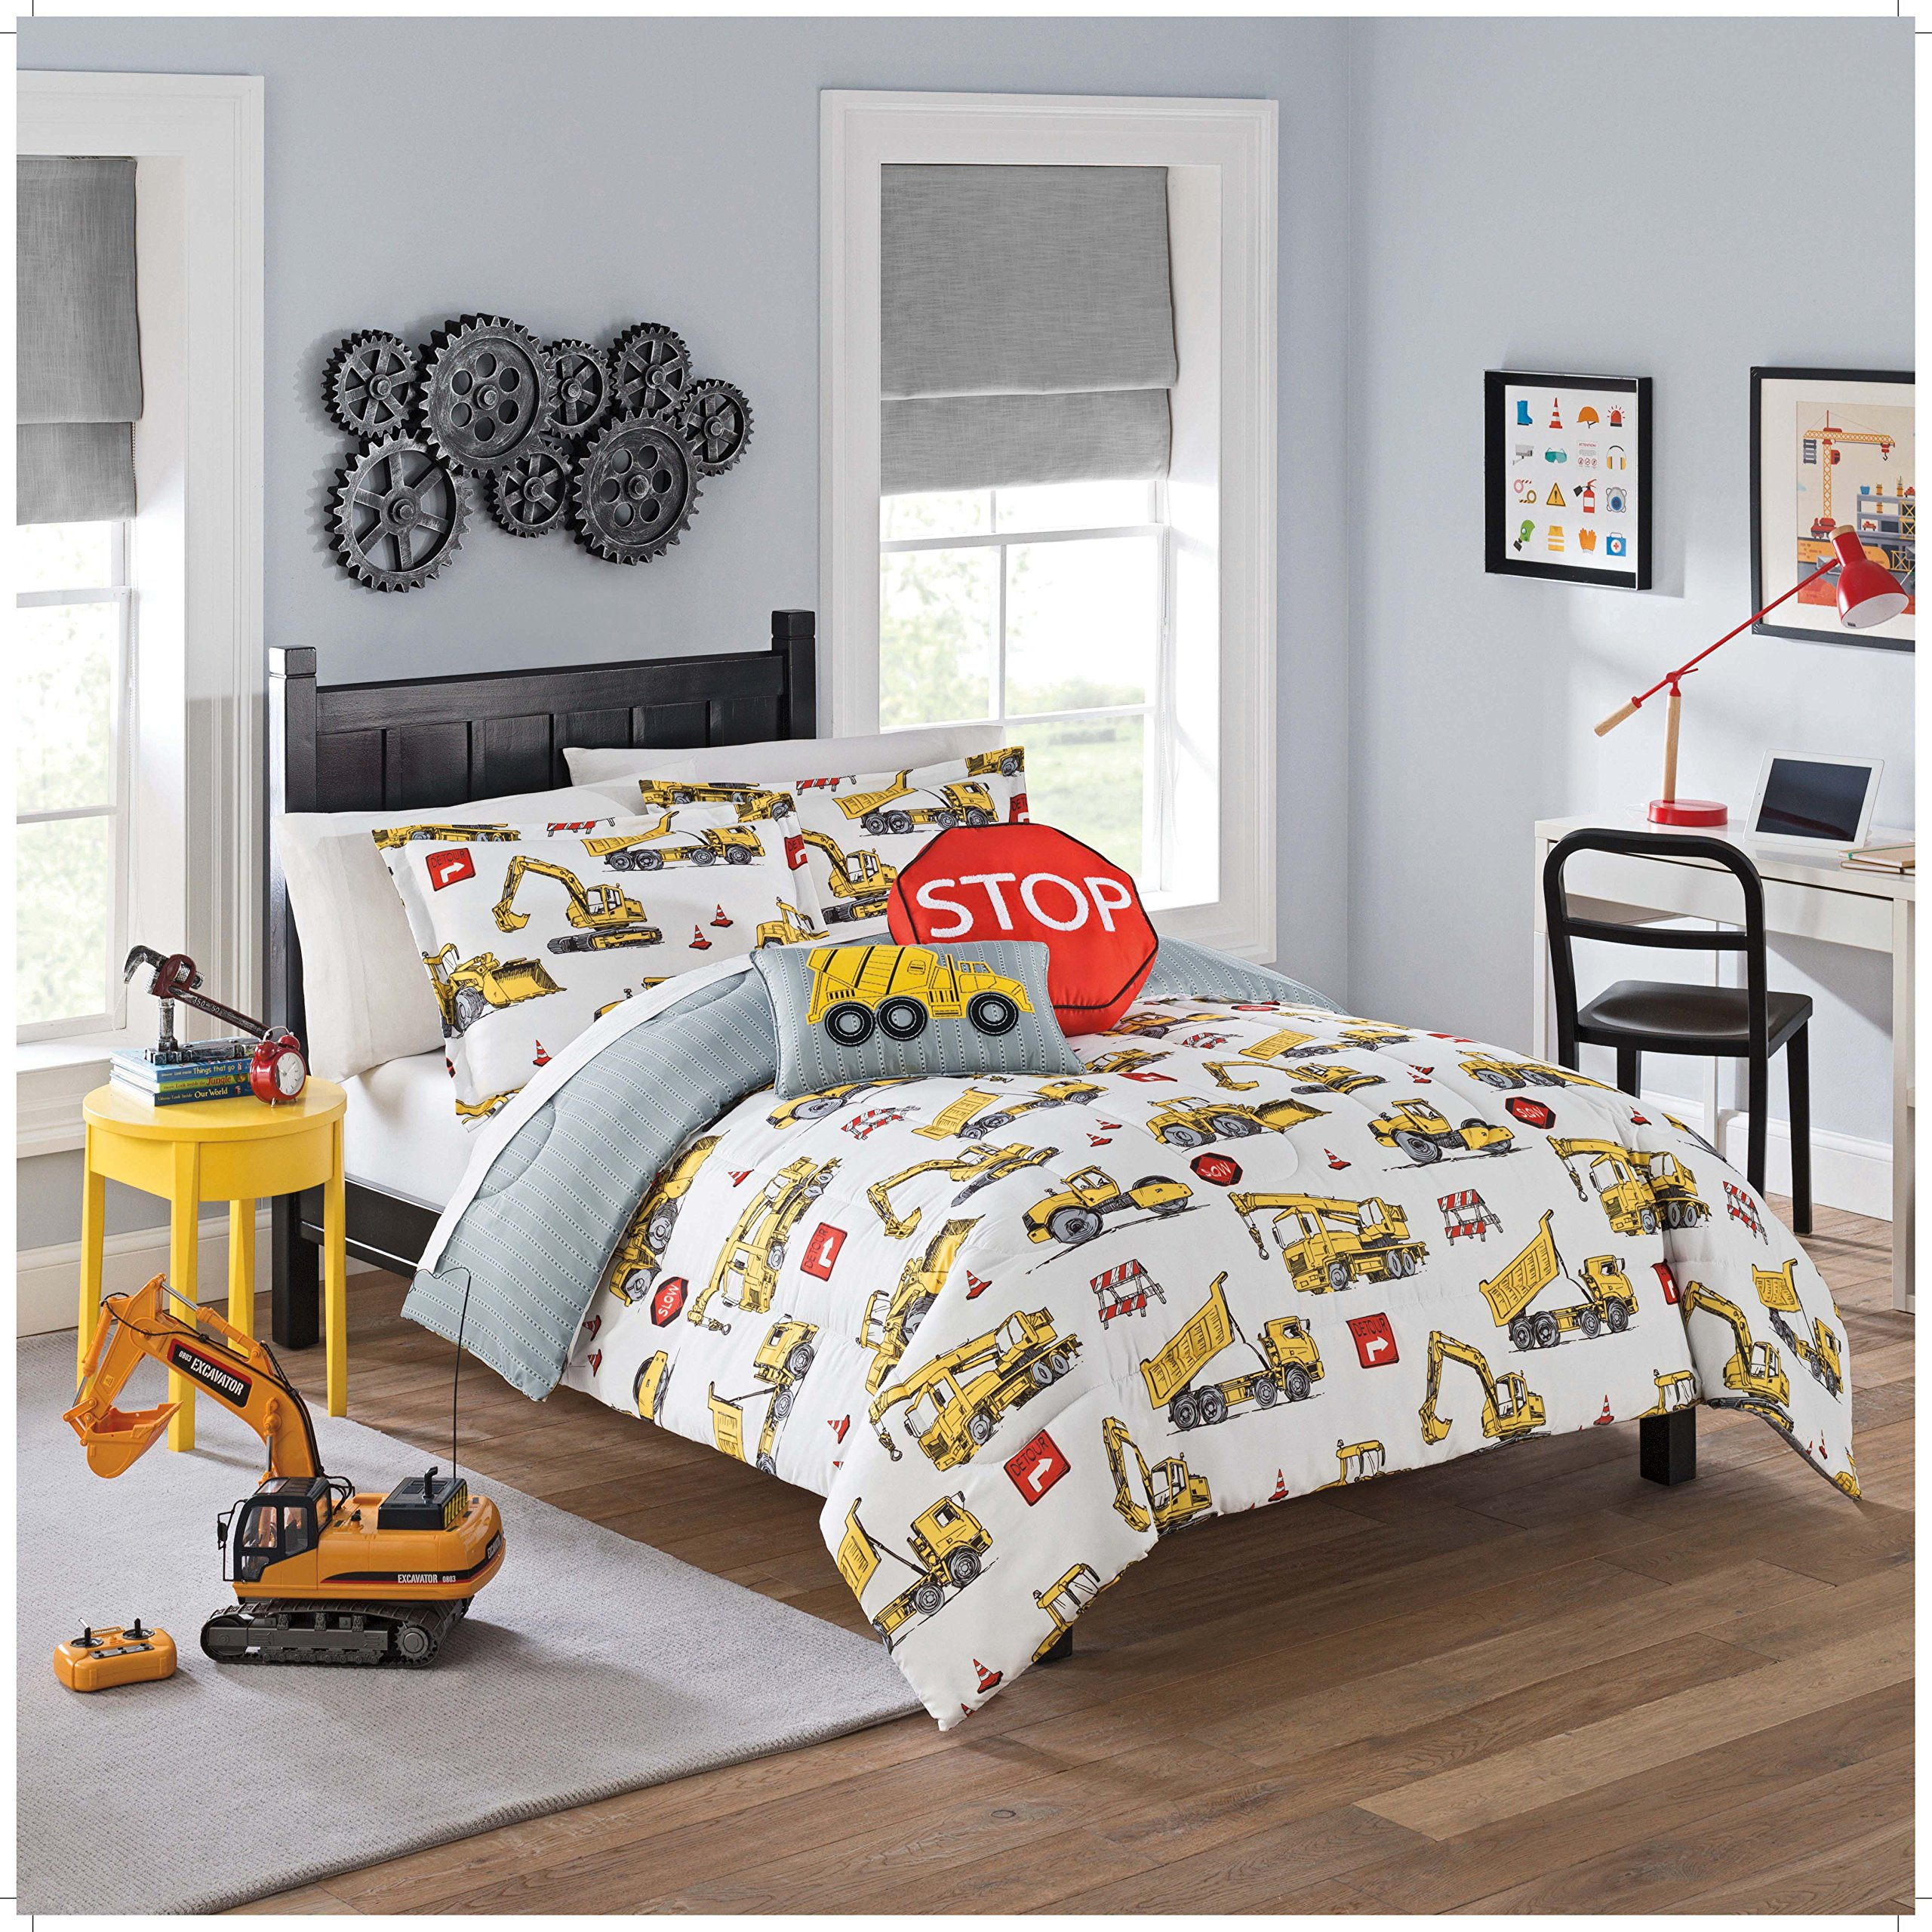 WAVERLY Kids Under Under Construction Reversible Bedding Collection, Twin, Multicolor by WAVERLY